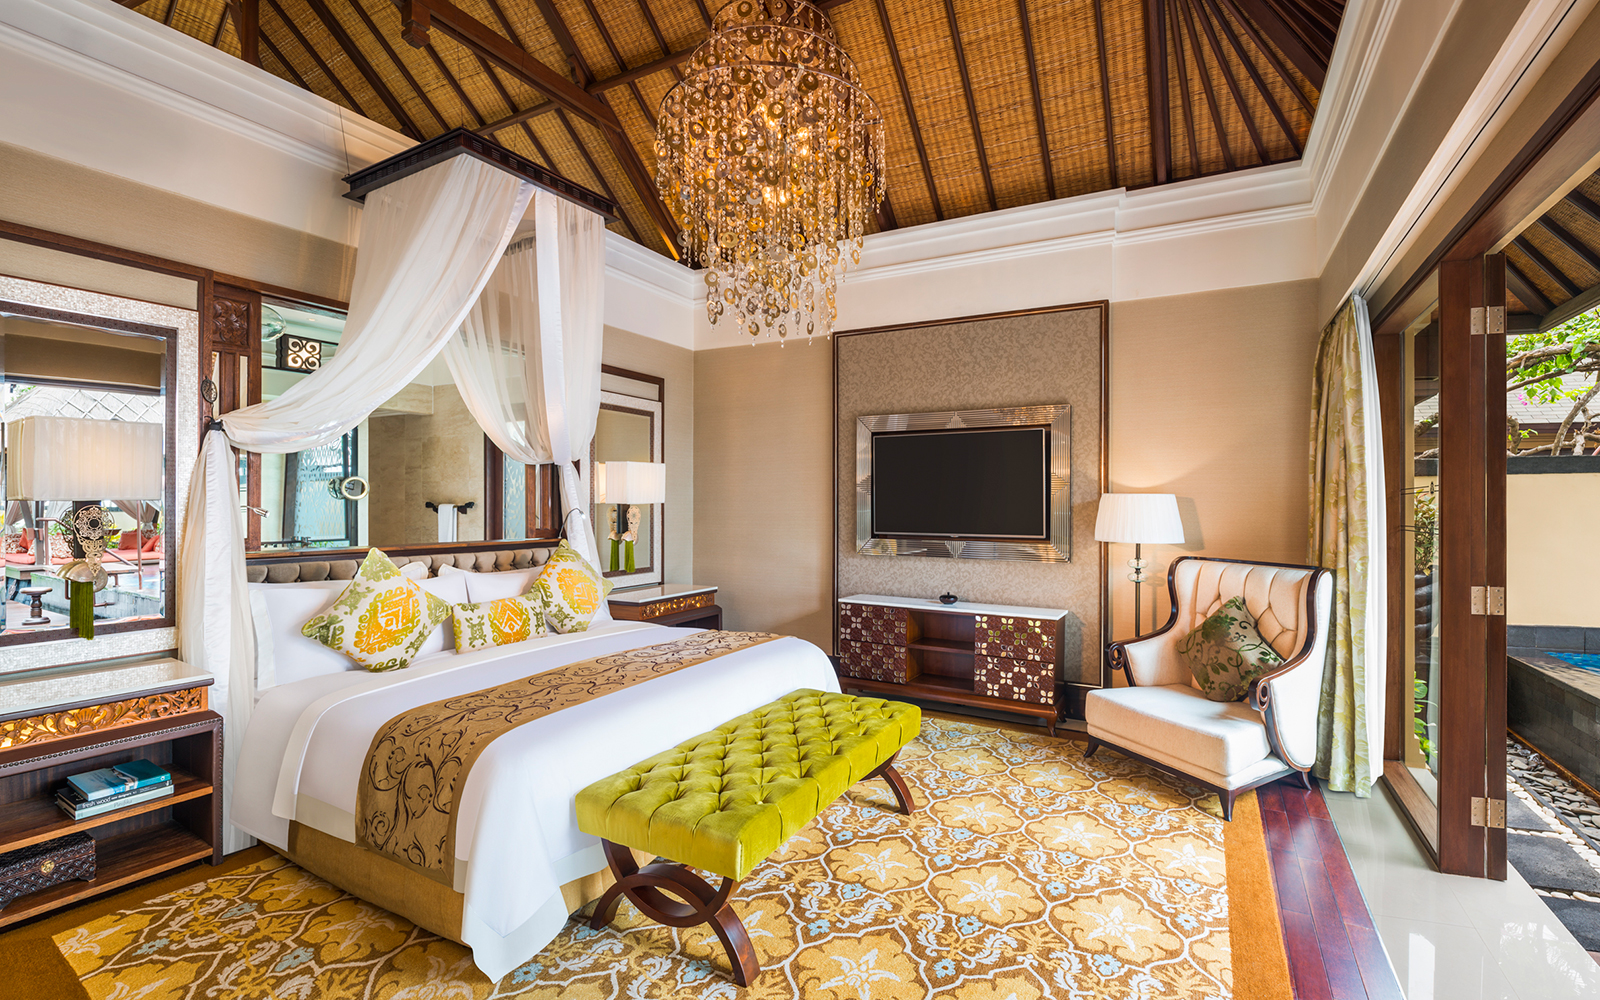 No. 2: The St. Regis Bali Resort, Nusa Dua